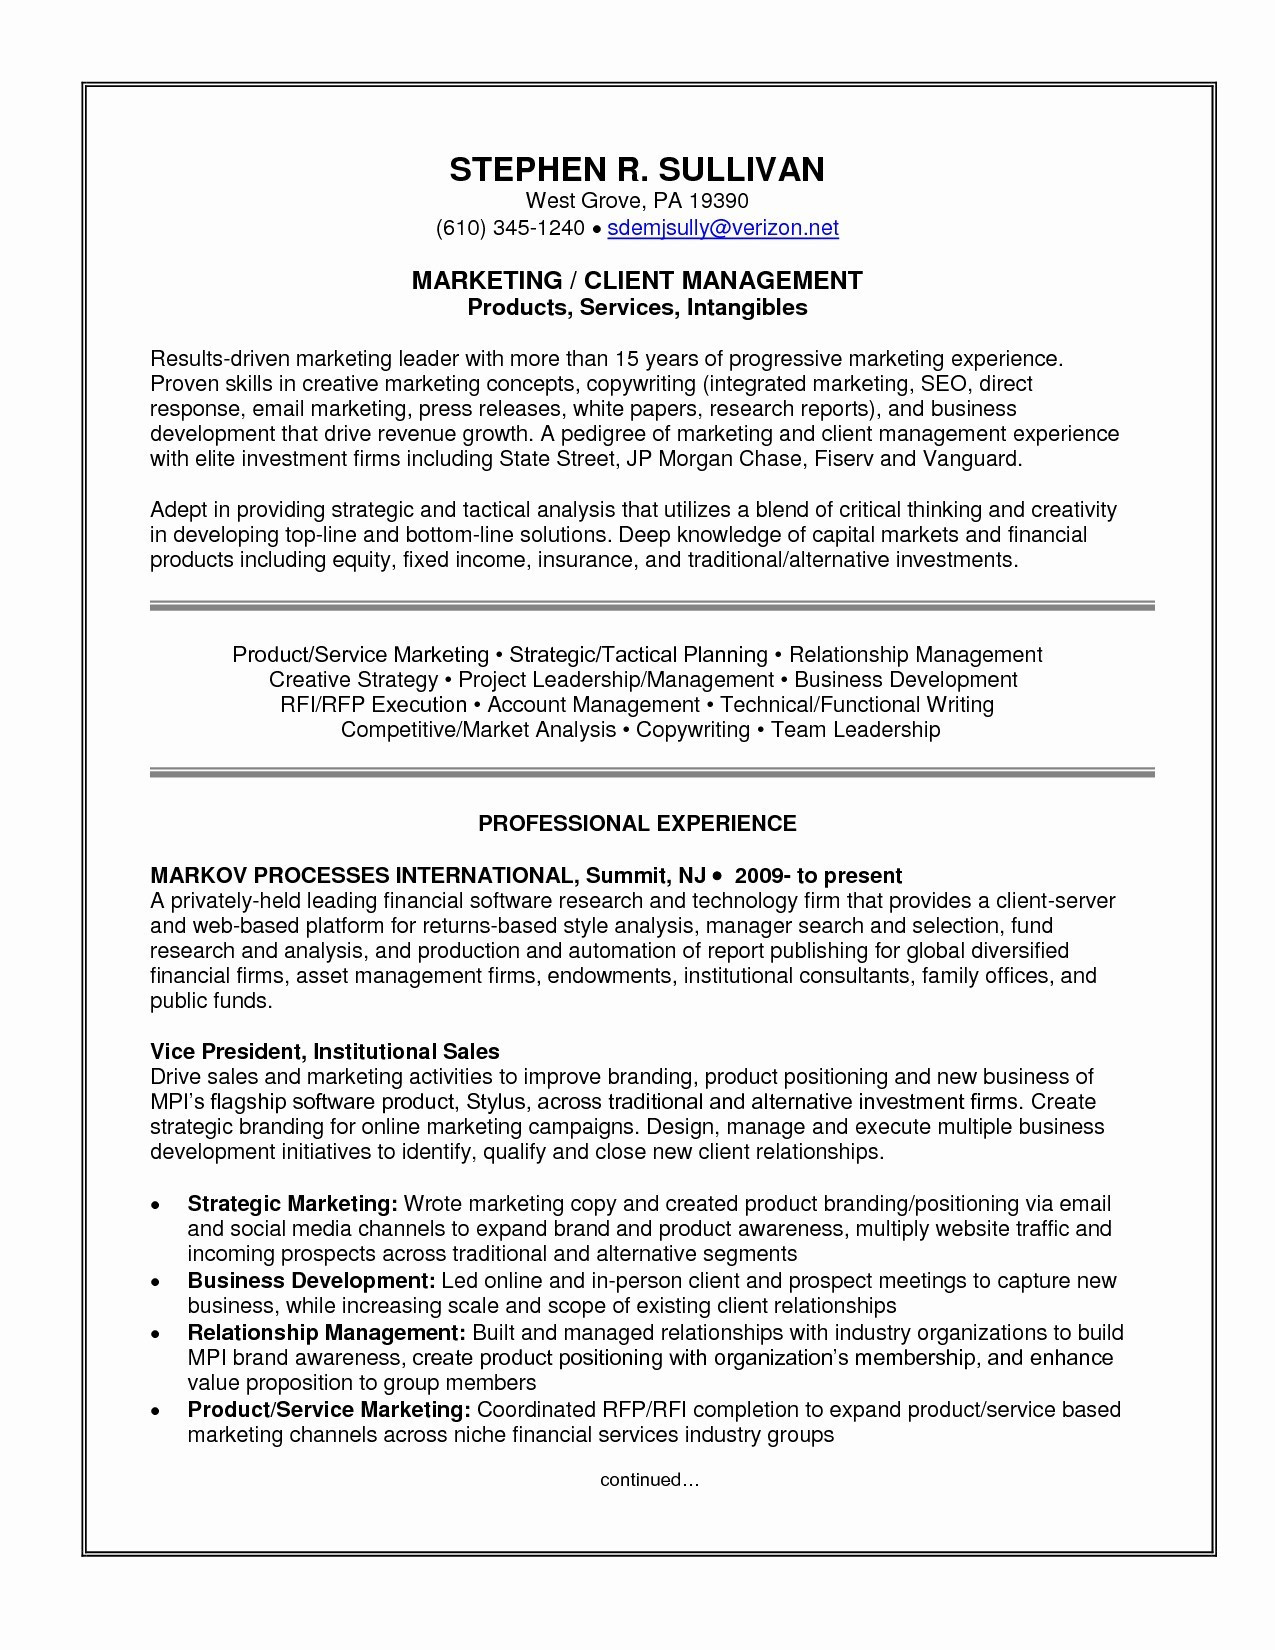 Chief Financial Officer Resume Template - Experienced Professional Resume Template Best top Resume Template